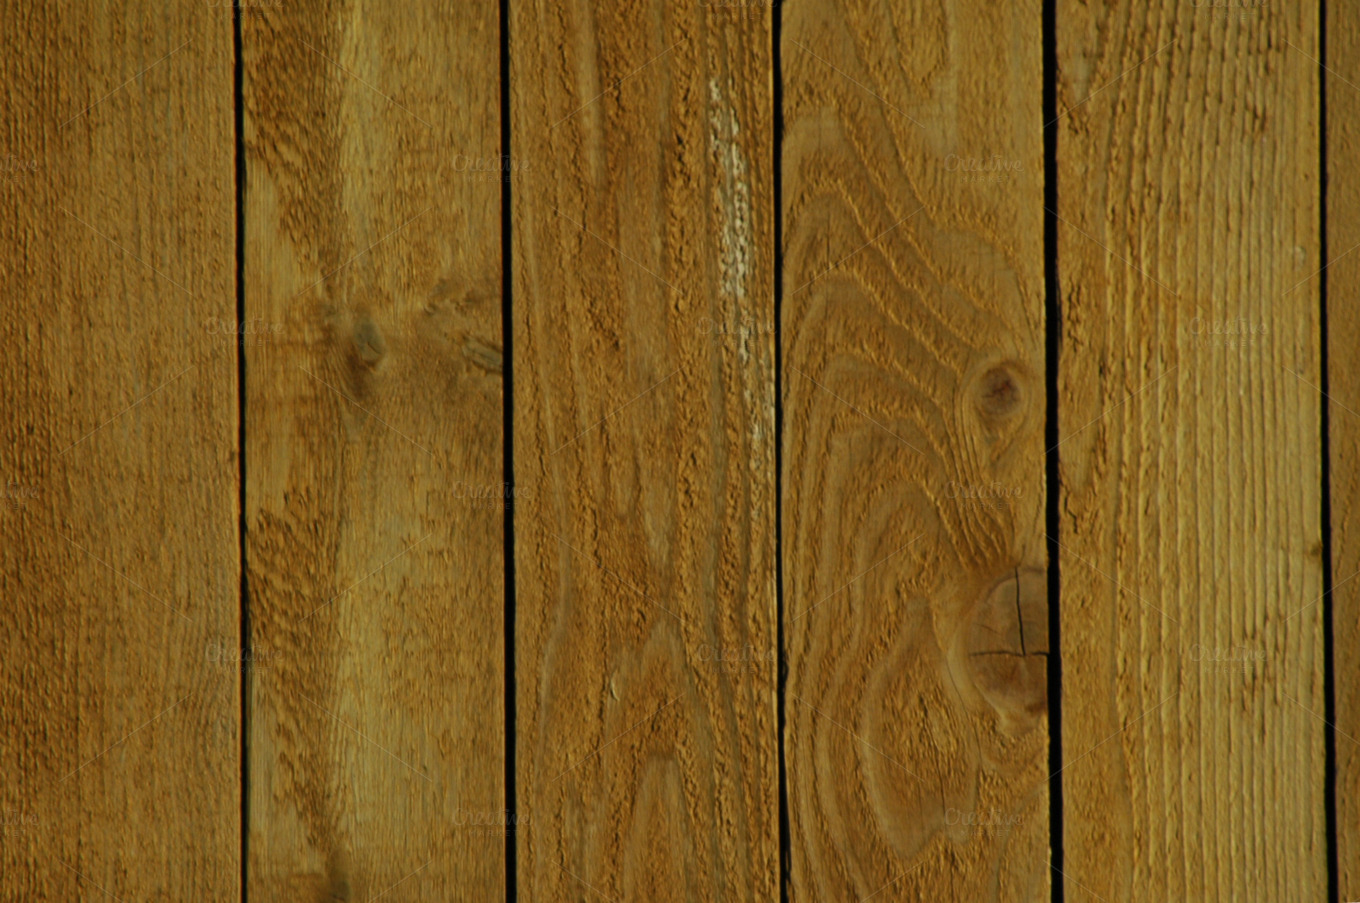 Amazing photo of wooden panels background texture ~ Abstract Photos on Creative Market with #714B16 color and 1360x903 pixels